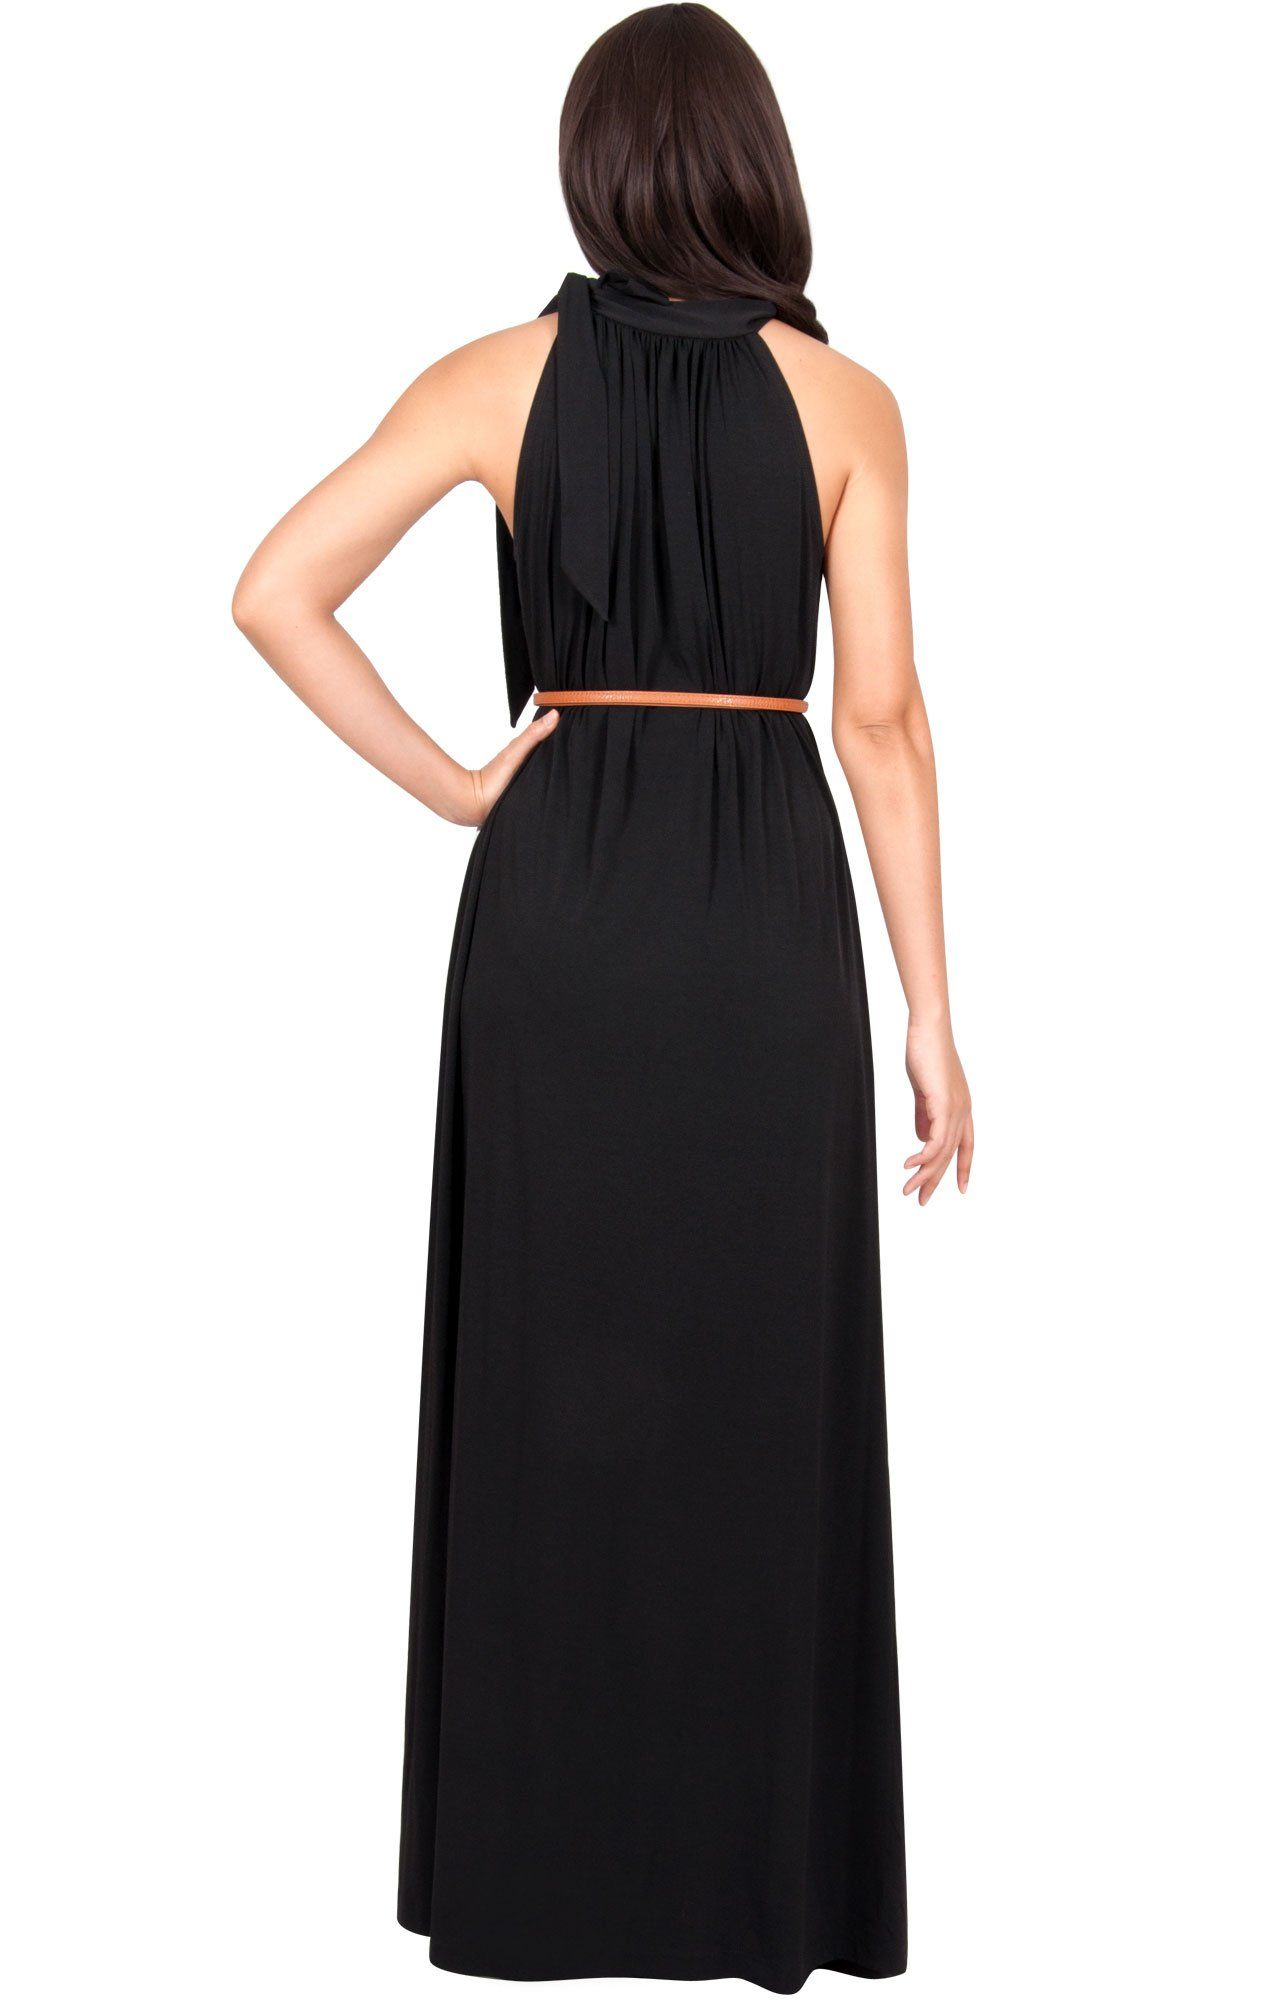 664a77a0d90 Maternity Outfits - cool maternity maxi dress   KOH KOH Womens Long Halter  Sleeveless Sexy Summer Belted Evening Maxi Dress Black S 46   A lot more ...